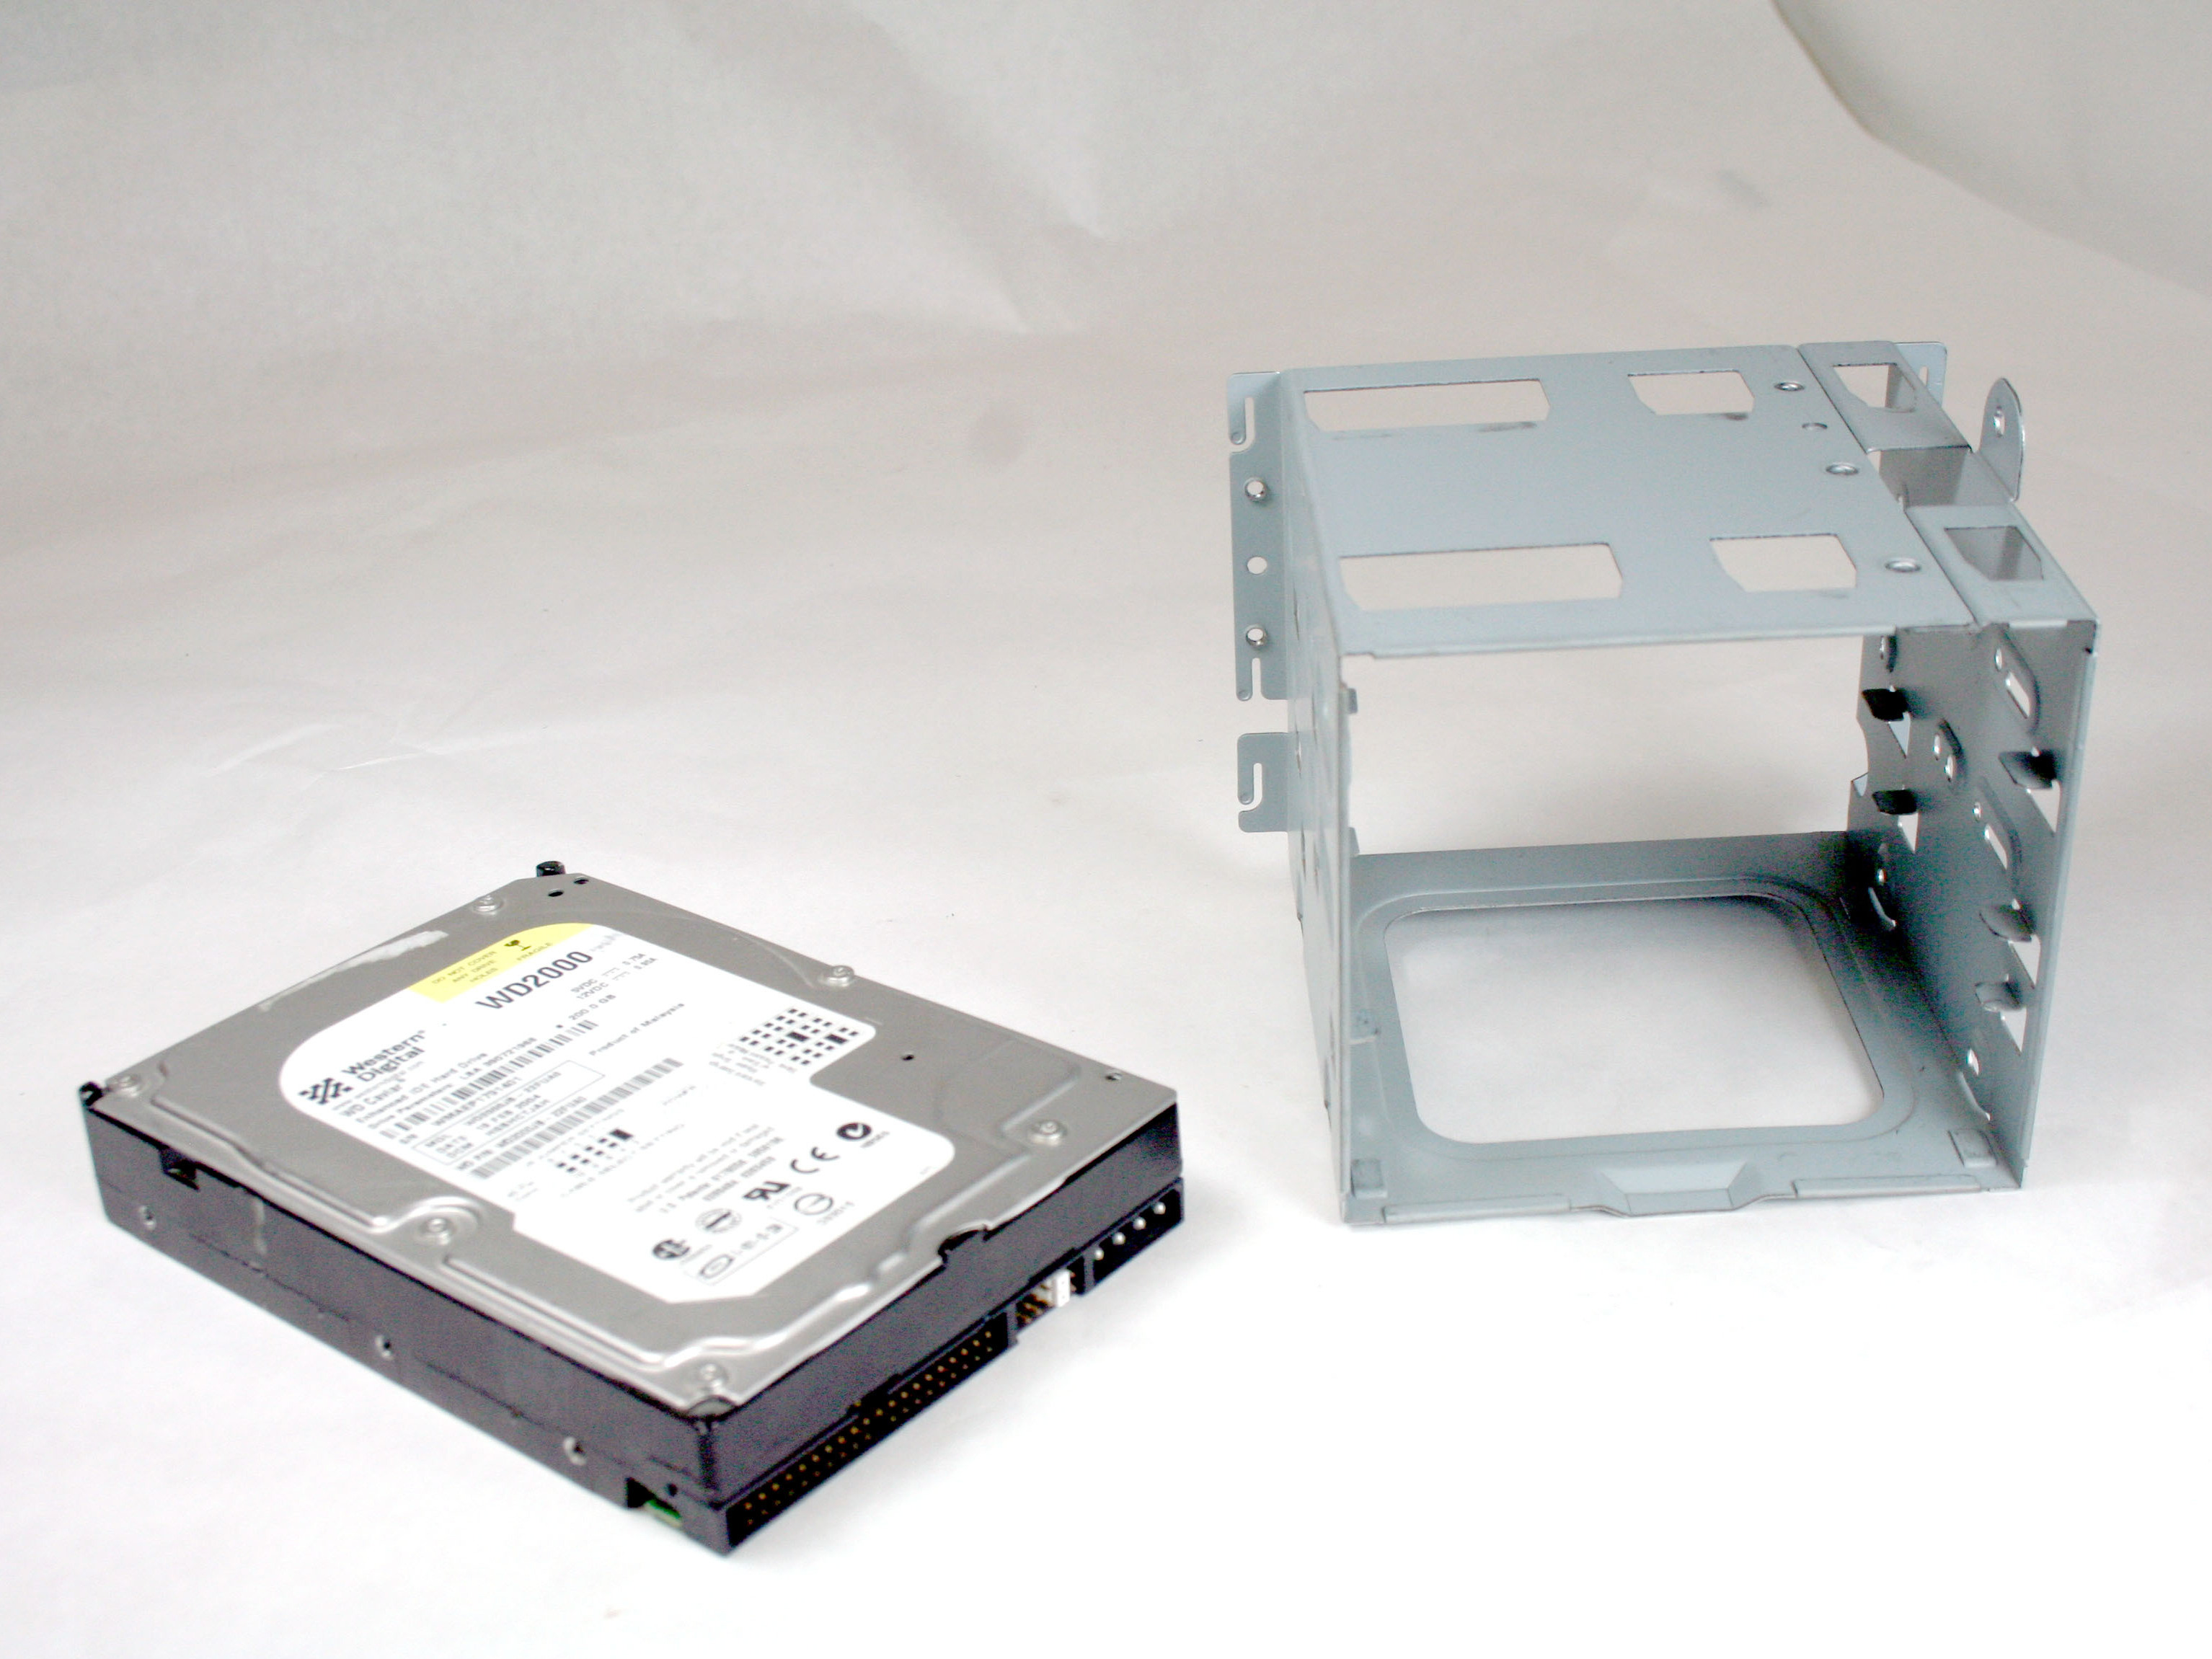 Hp dx2000mt driver download sterling-movie.